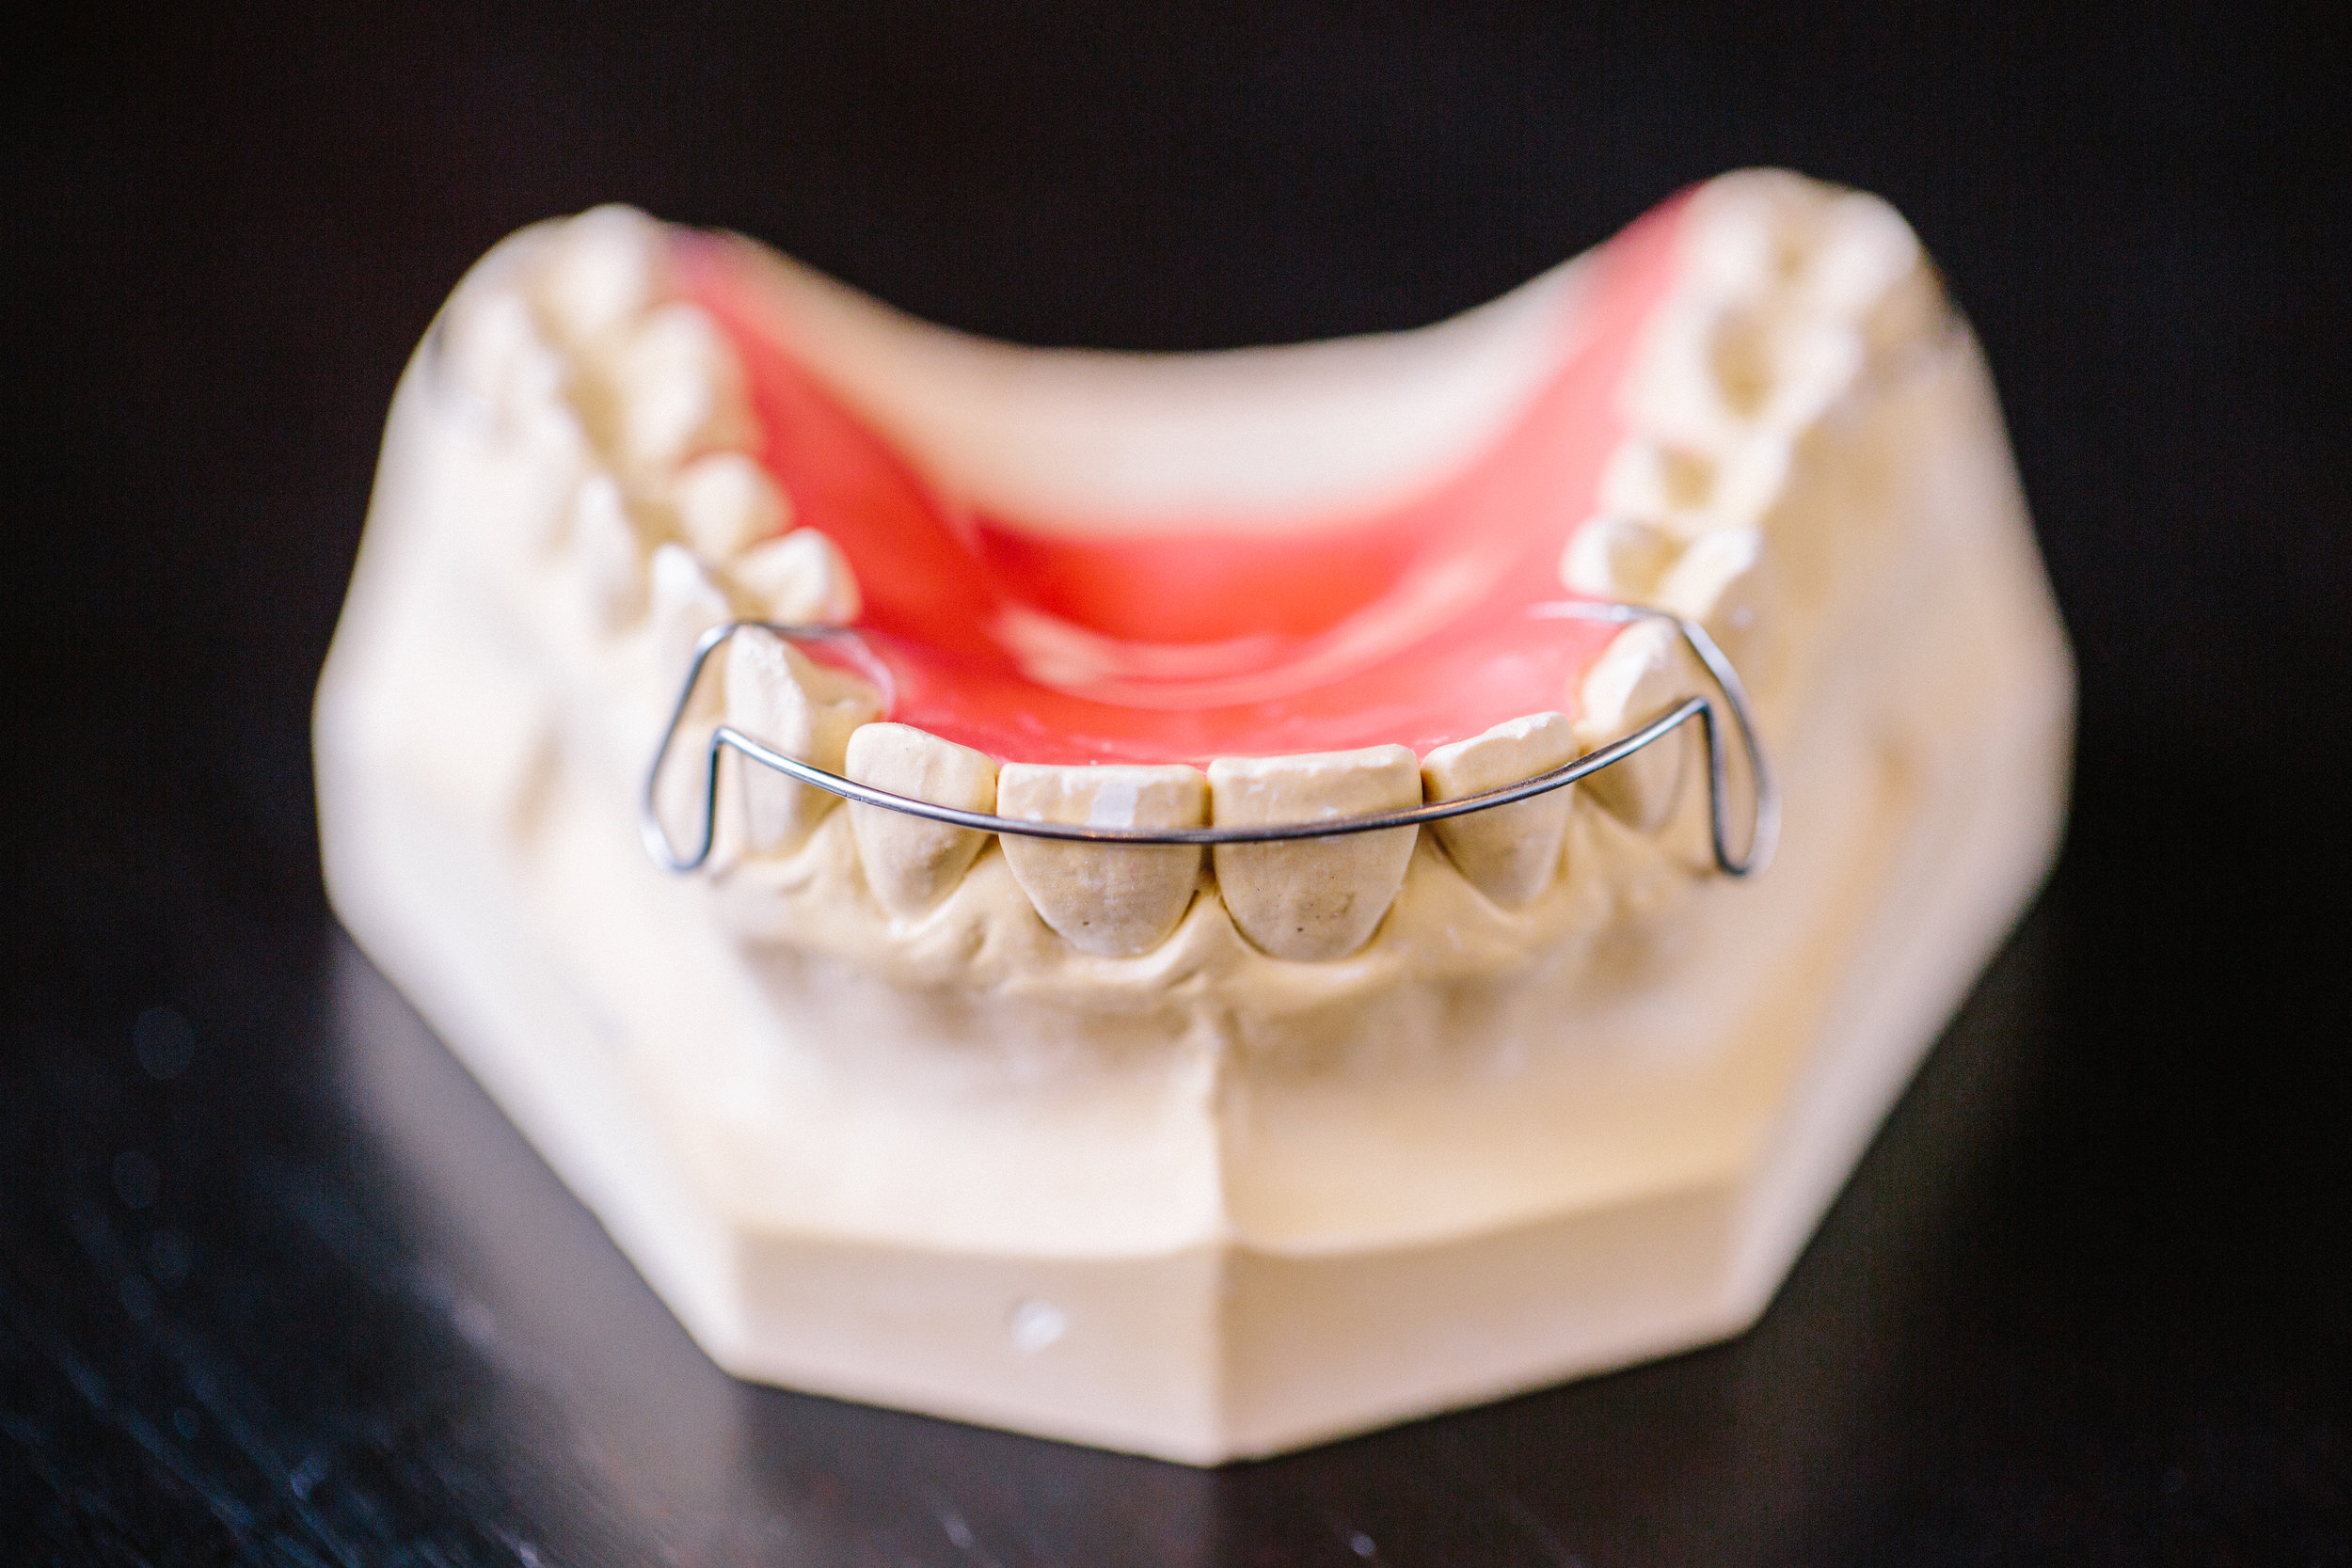 Tooth model with retainer